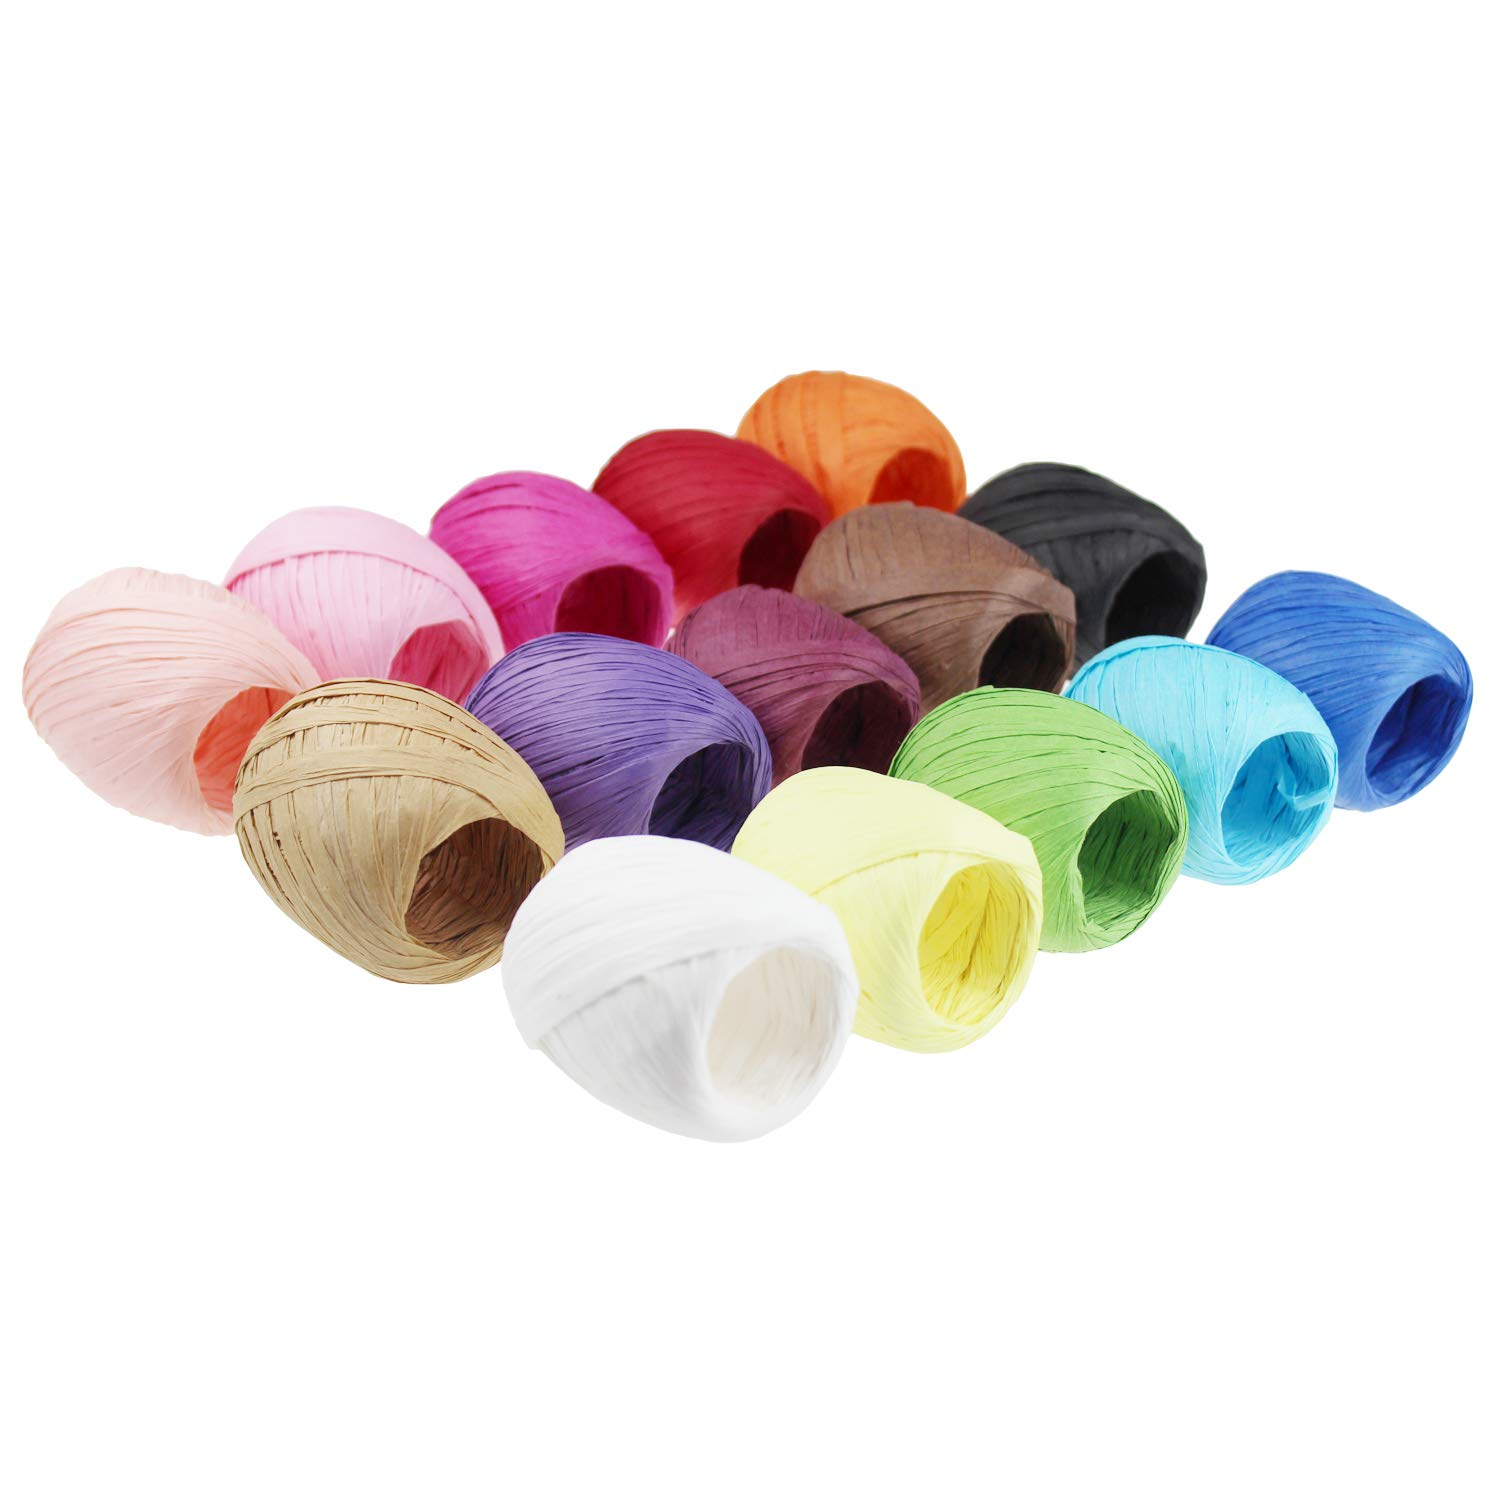 Raffia Paper Ribbon Twine Strings 15 Rolls 15 Colors Set for DIY Craft Gift Box Packing by Goodma